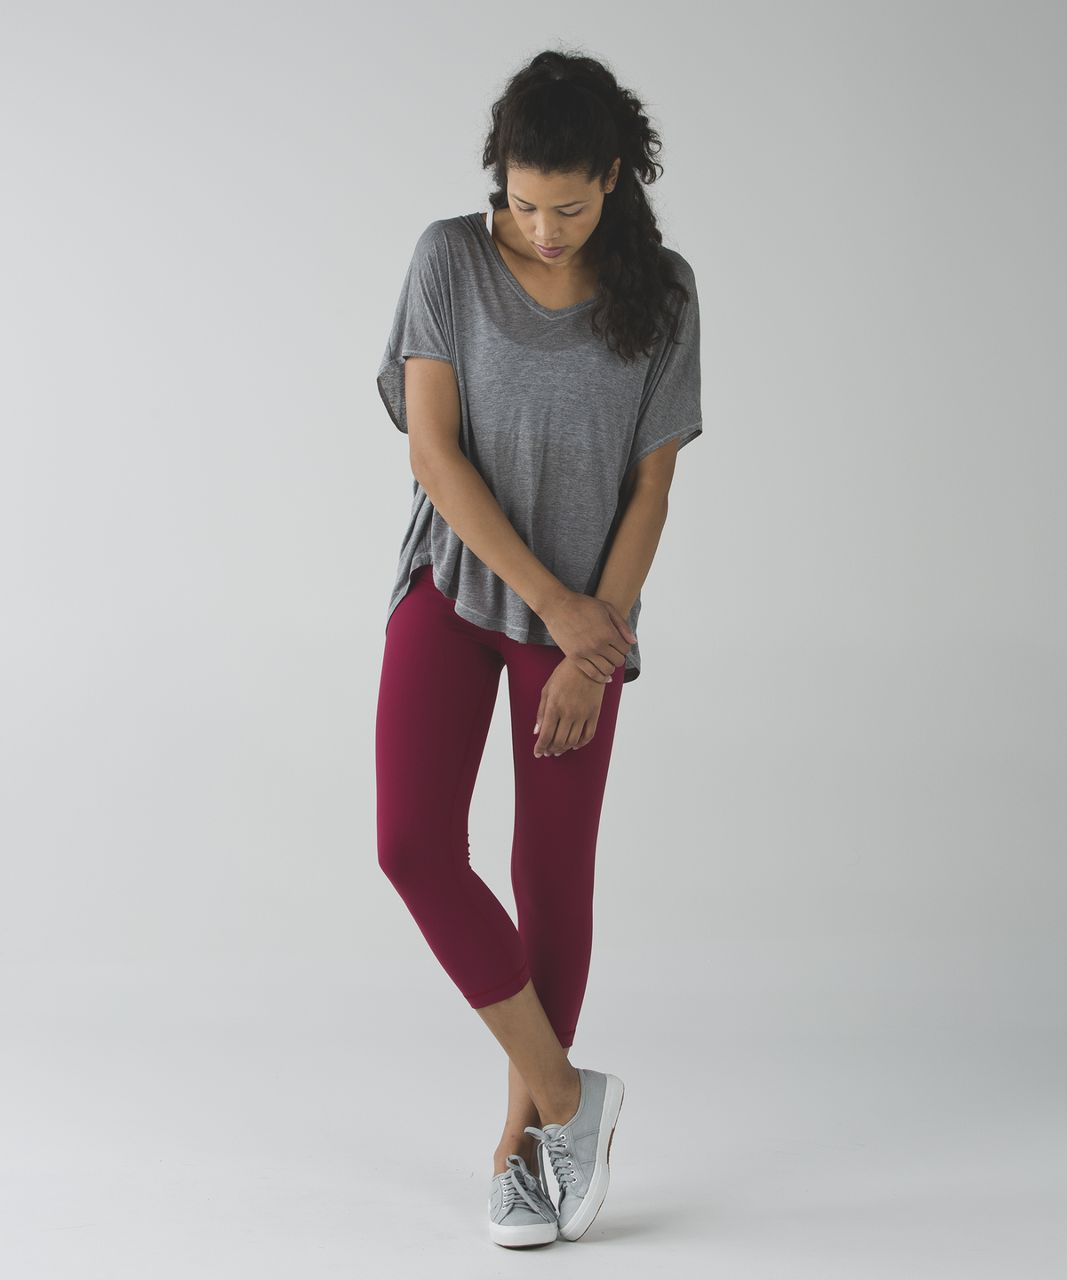 Lululemon Wunder Under Crop *Full-On Luon (Hi-Rise) - Cranberry